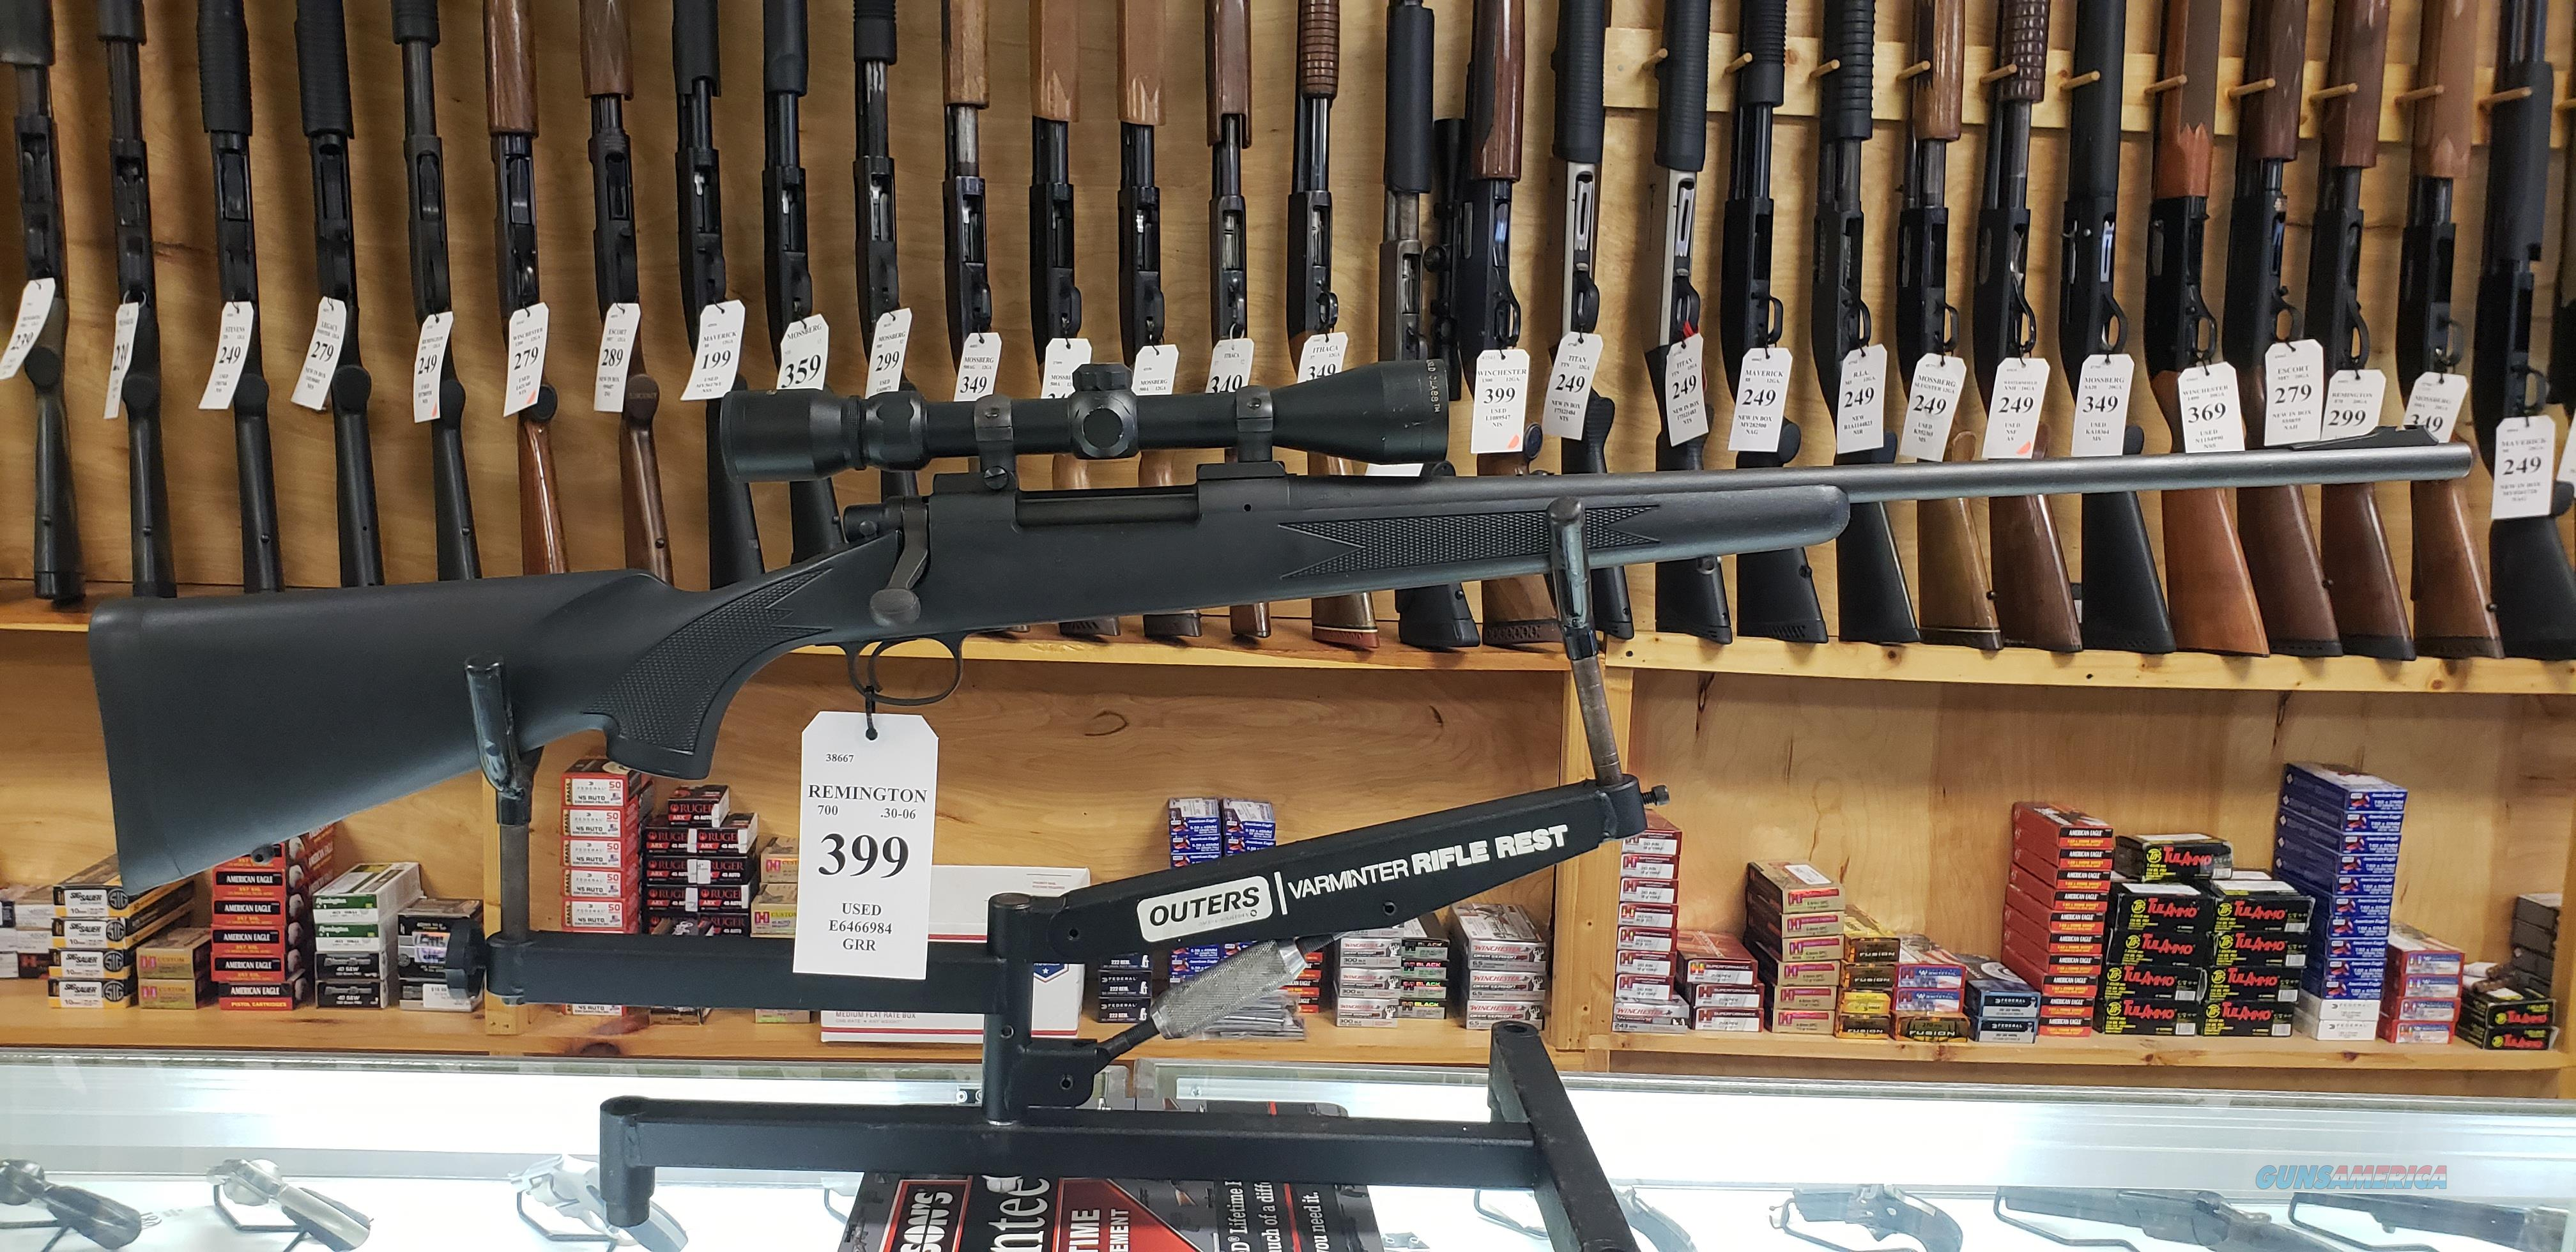 Remington 700 .30-06 with Scope *LAYAWAY AVAILABLE*  Guns > Rifles > Remington Rifles - Modern > Model 700 > Sporting